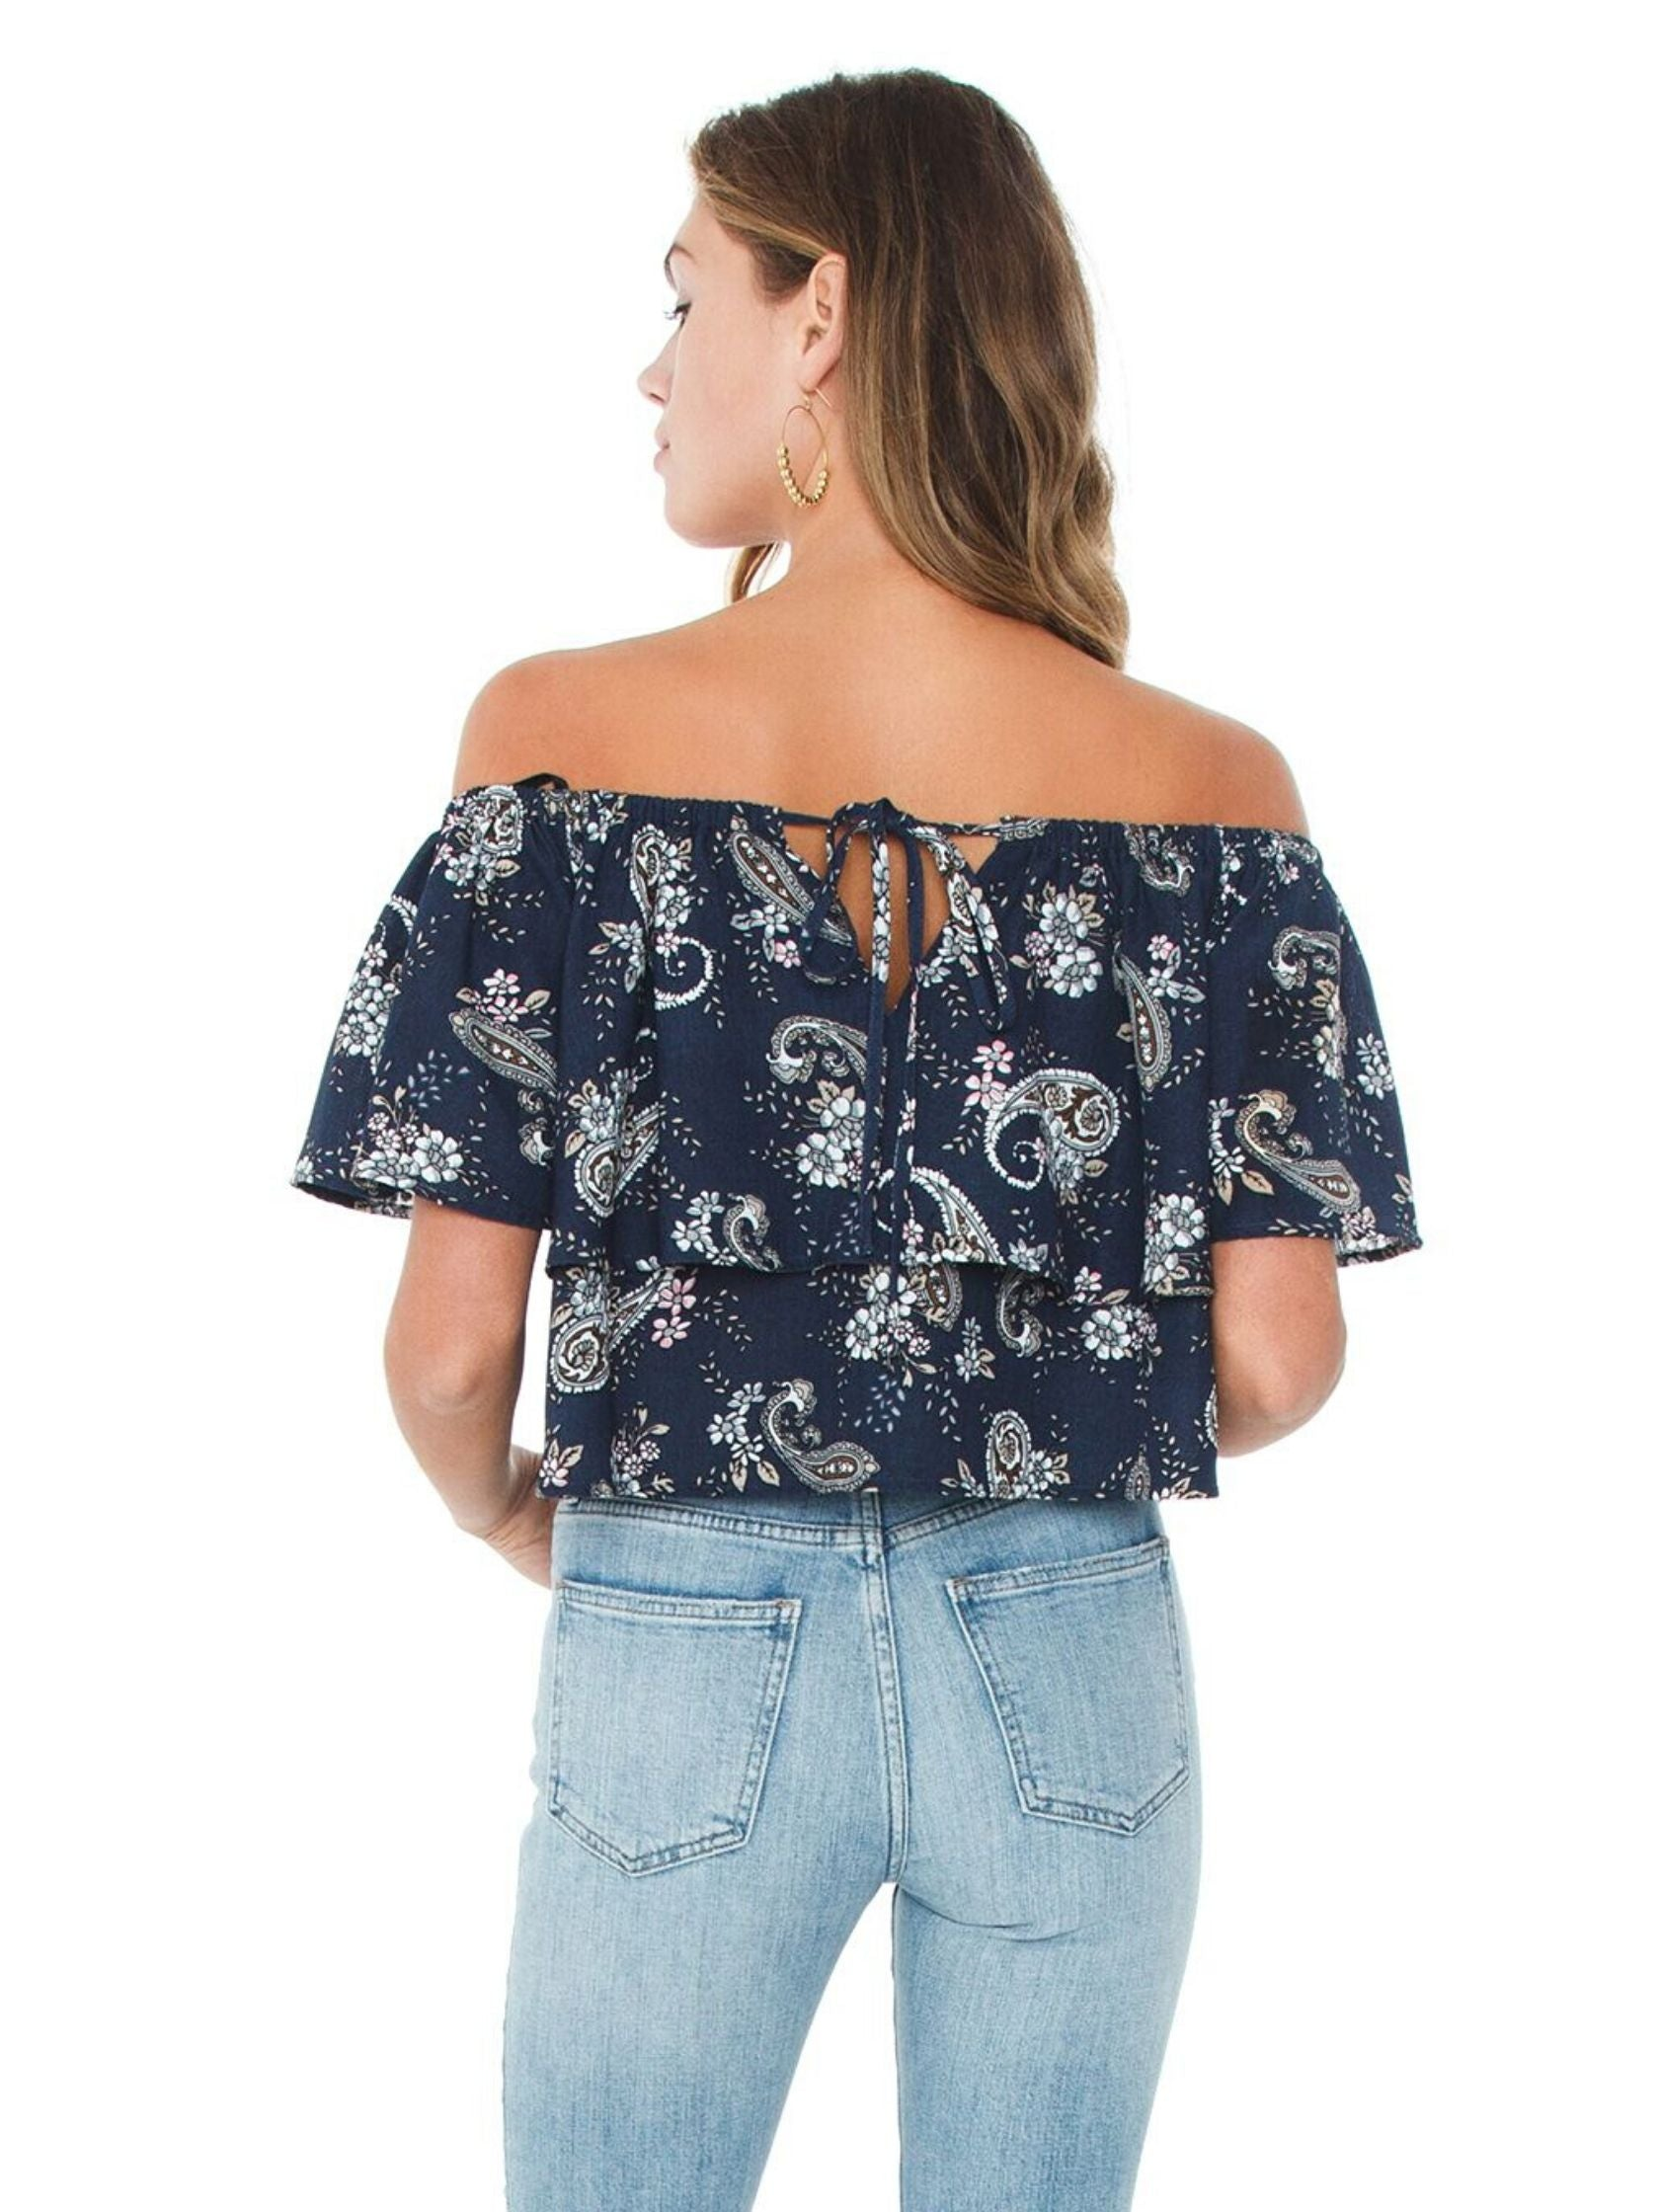 Women outfit in a top rental from J.O.A. called Off Shoulder Top